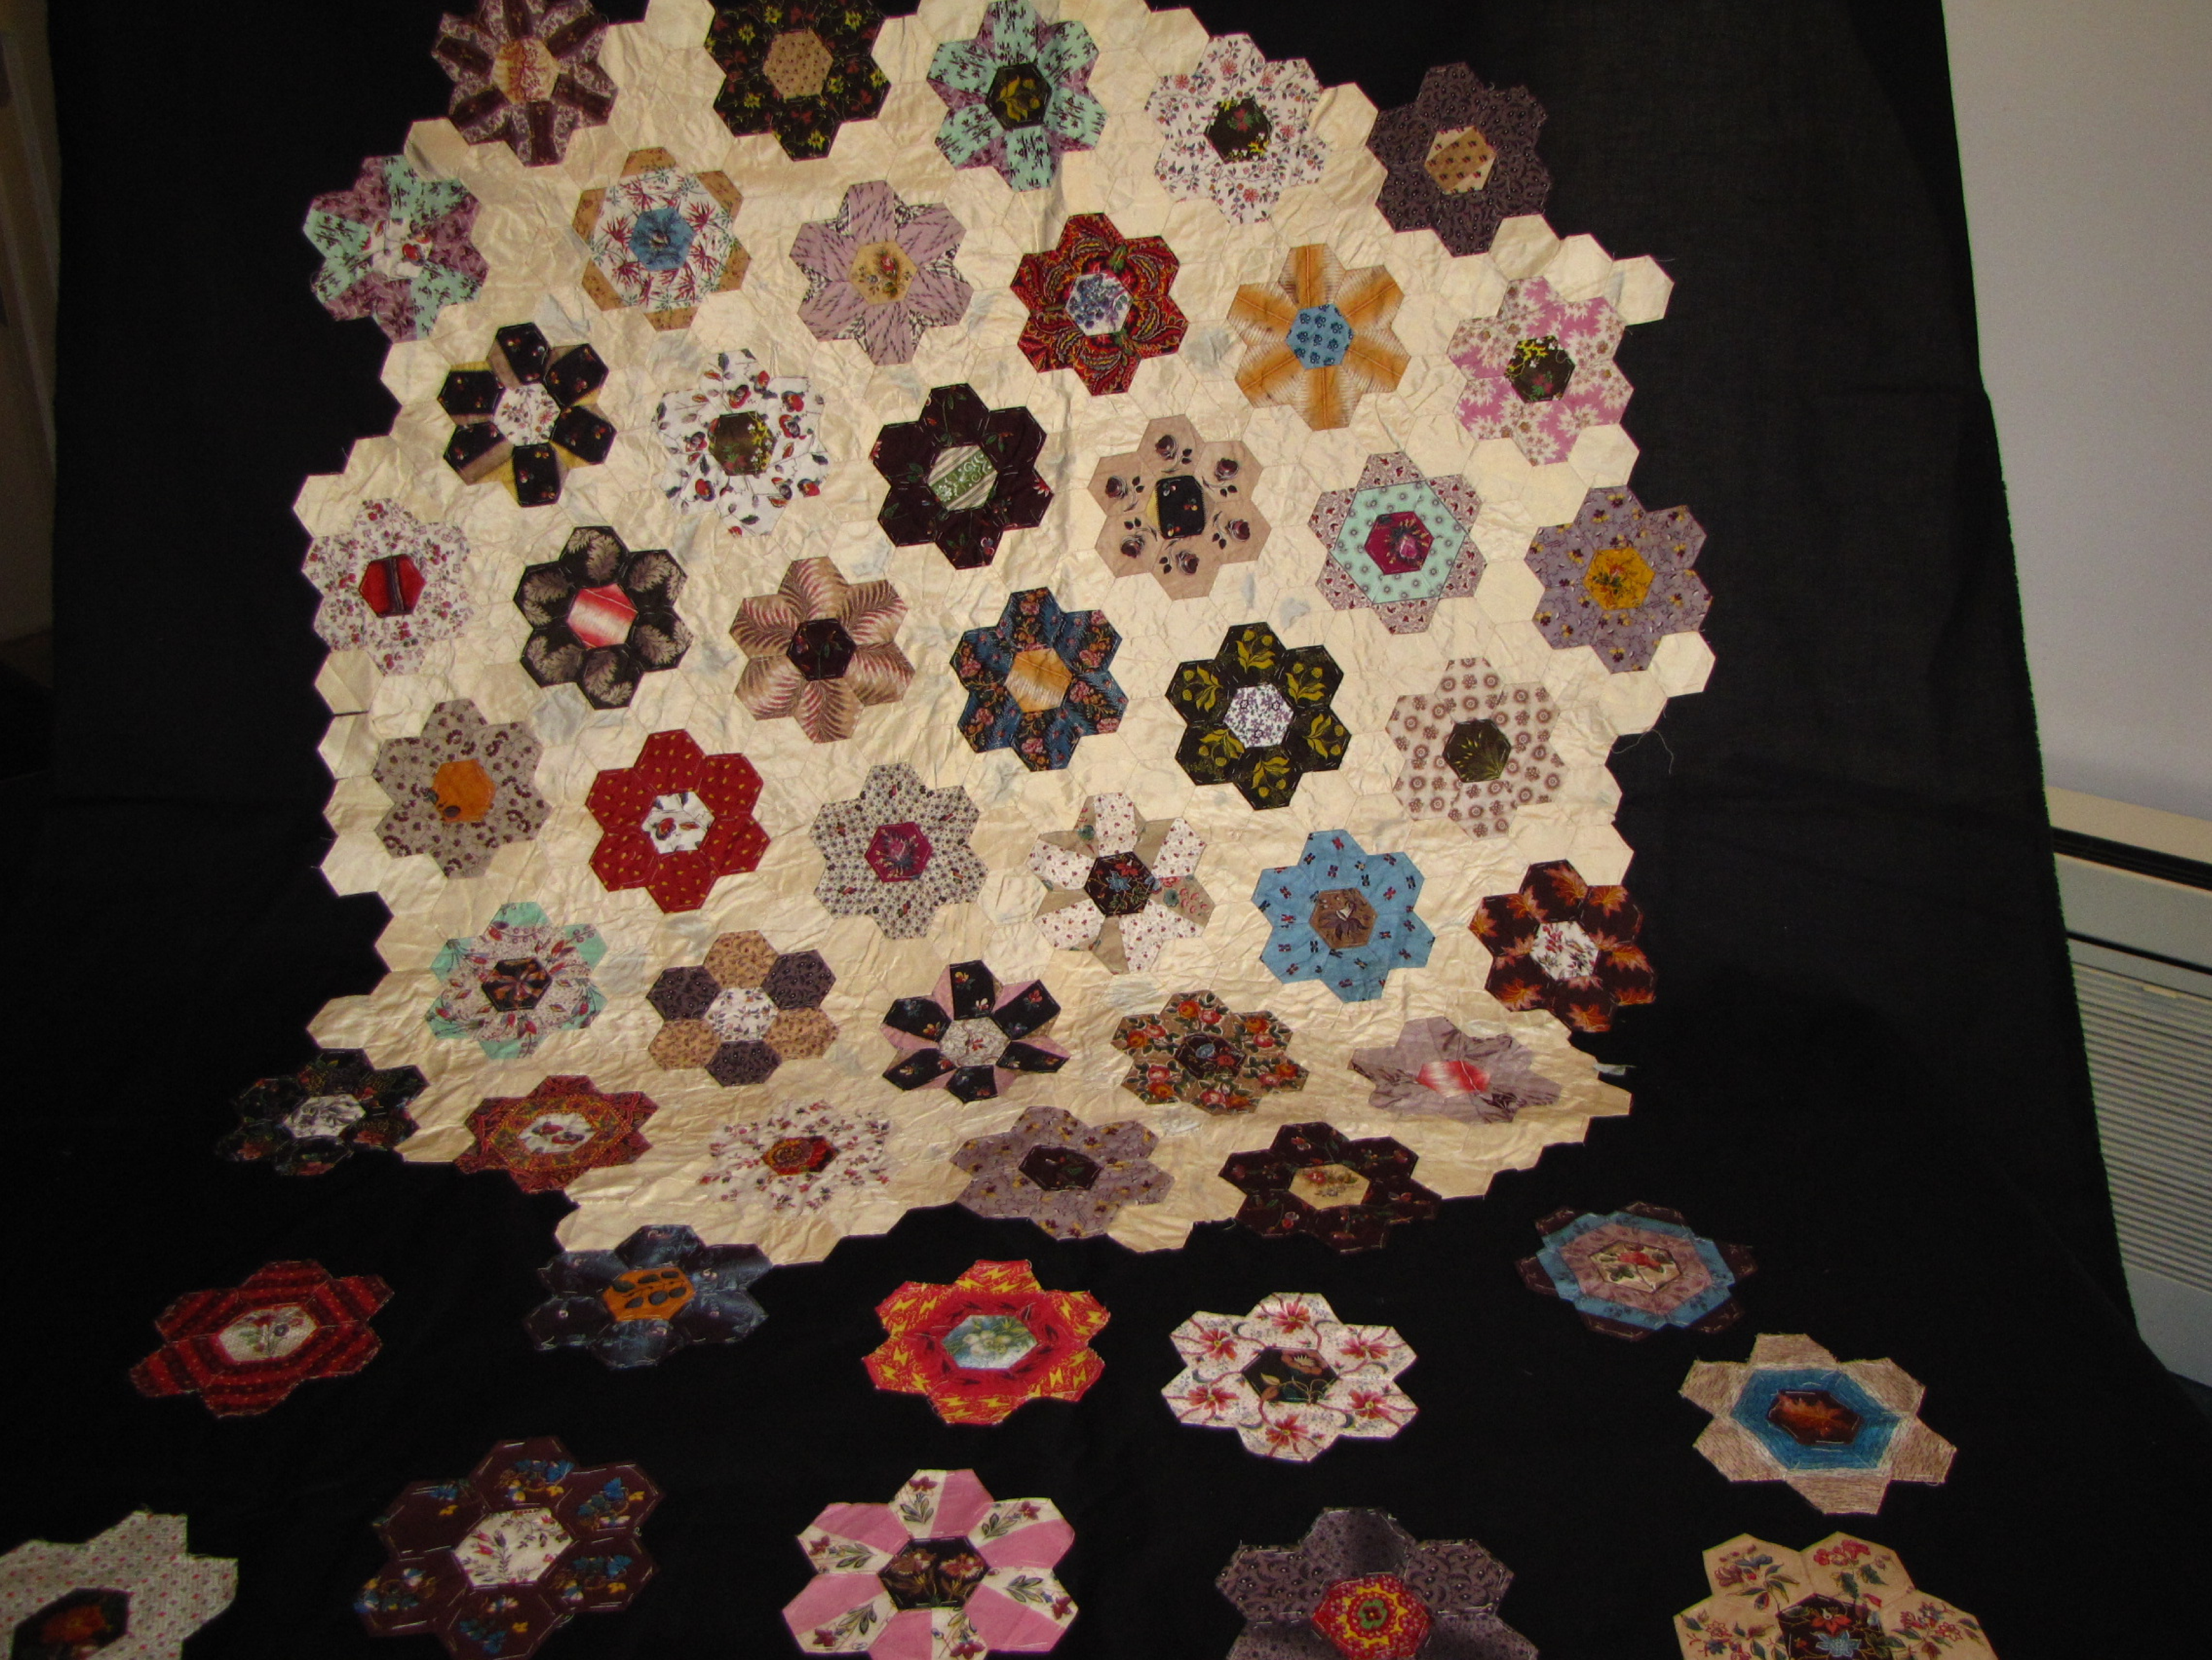 Lady FitzRoy's unfinished quilt